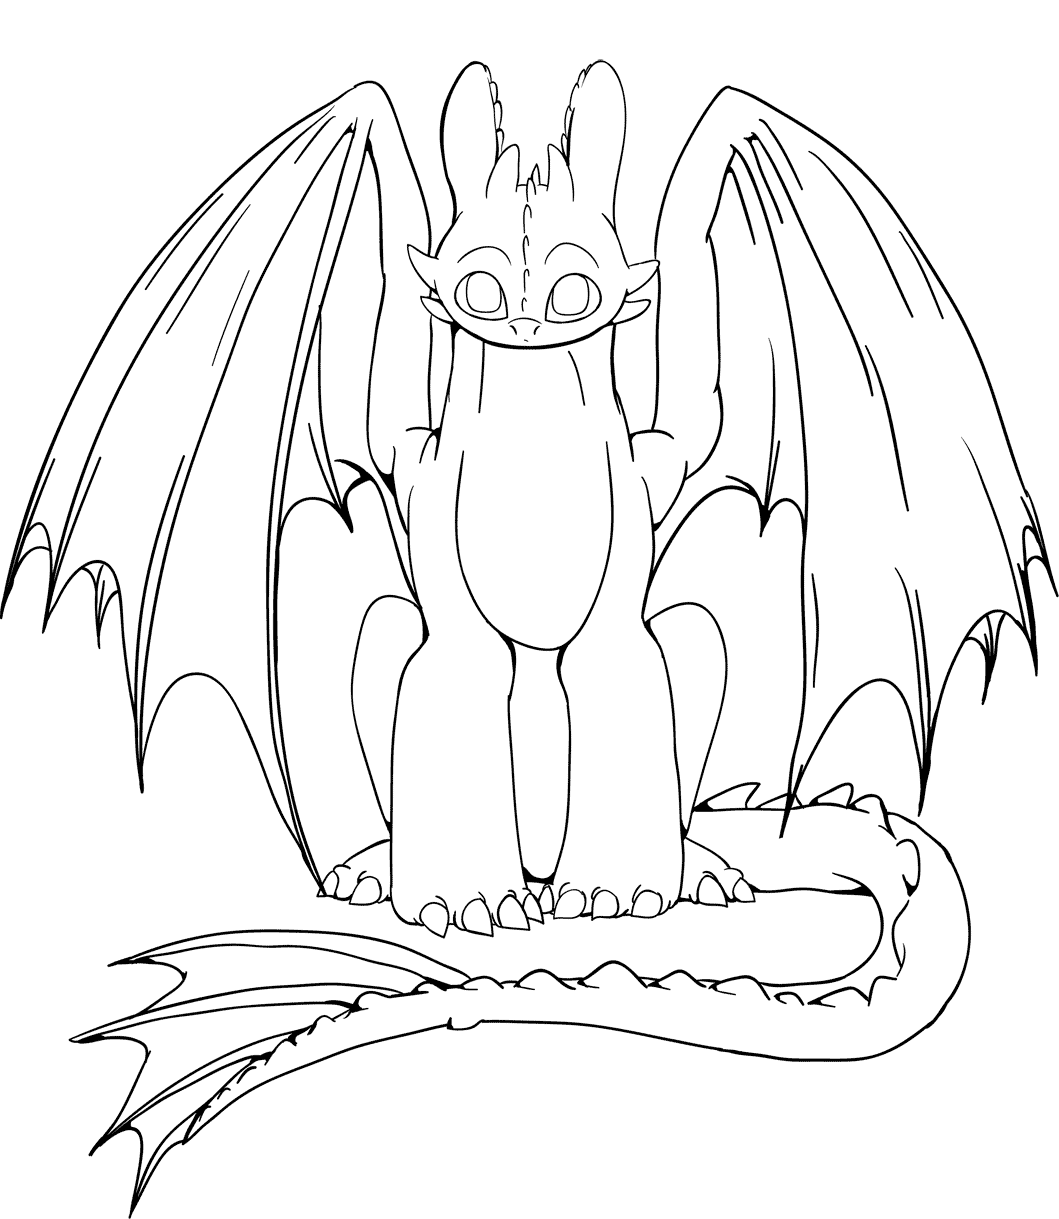 how to train your dragon coloring pages toothless how to train your dragon coloring pages best coloring to your coloring dragon train how toothless pages